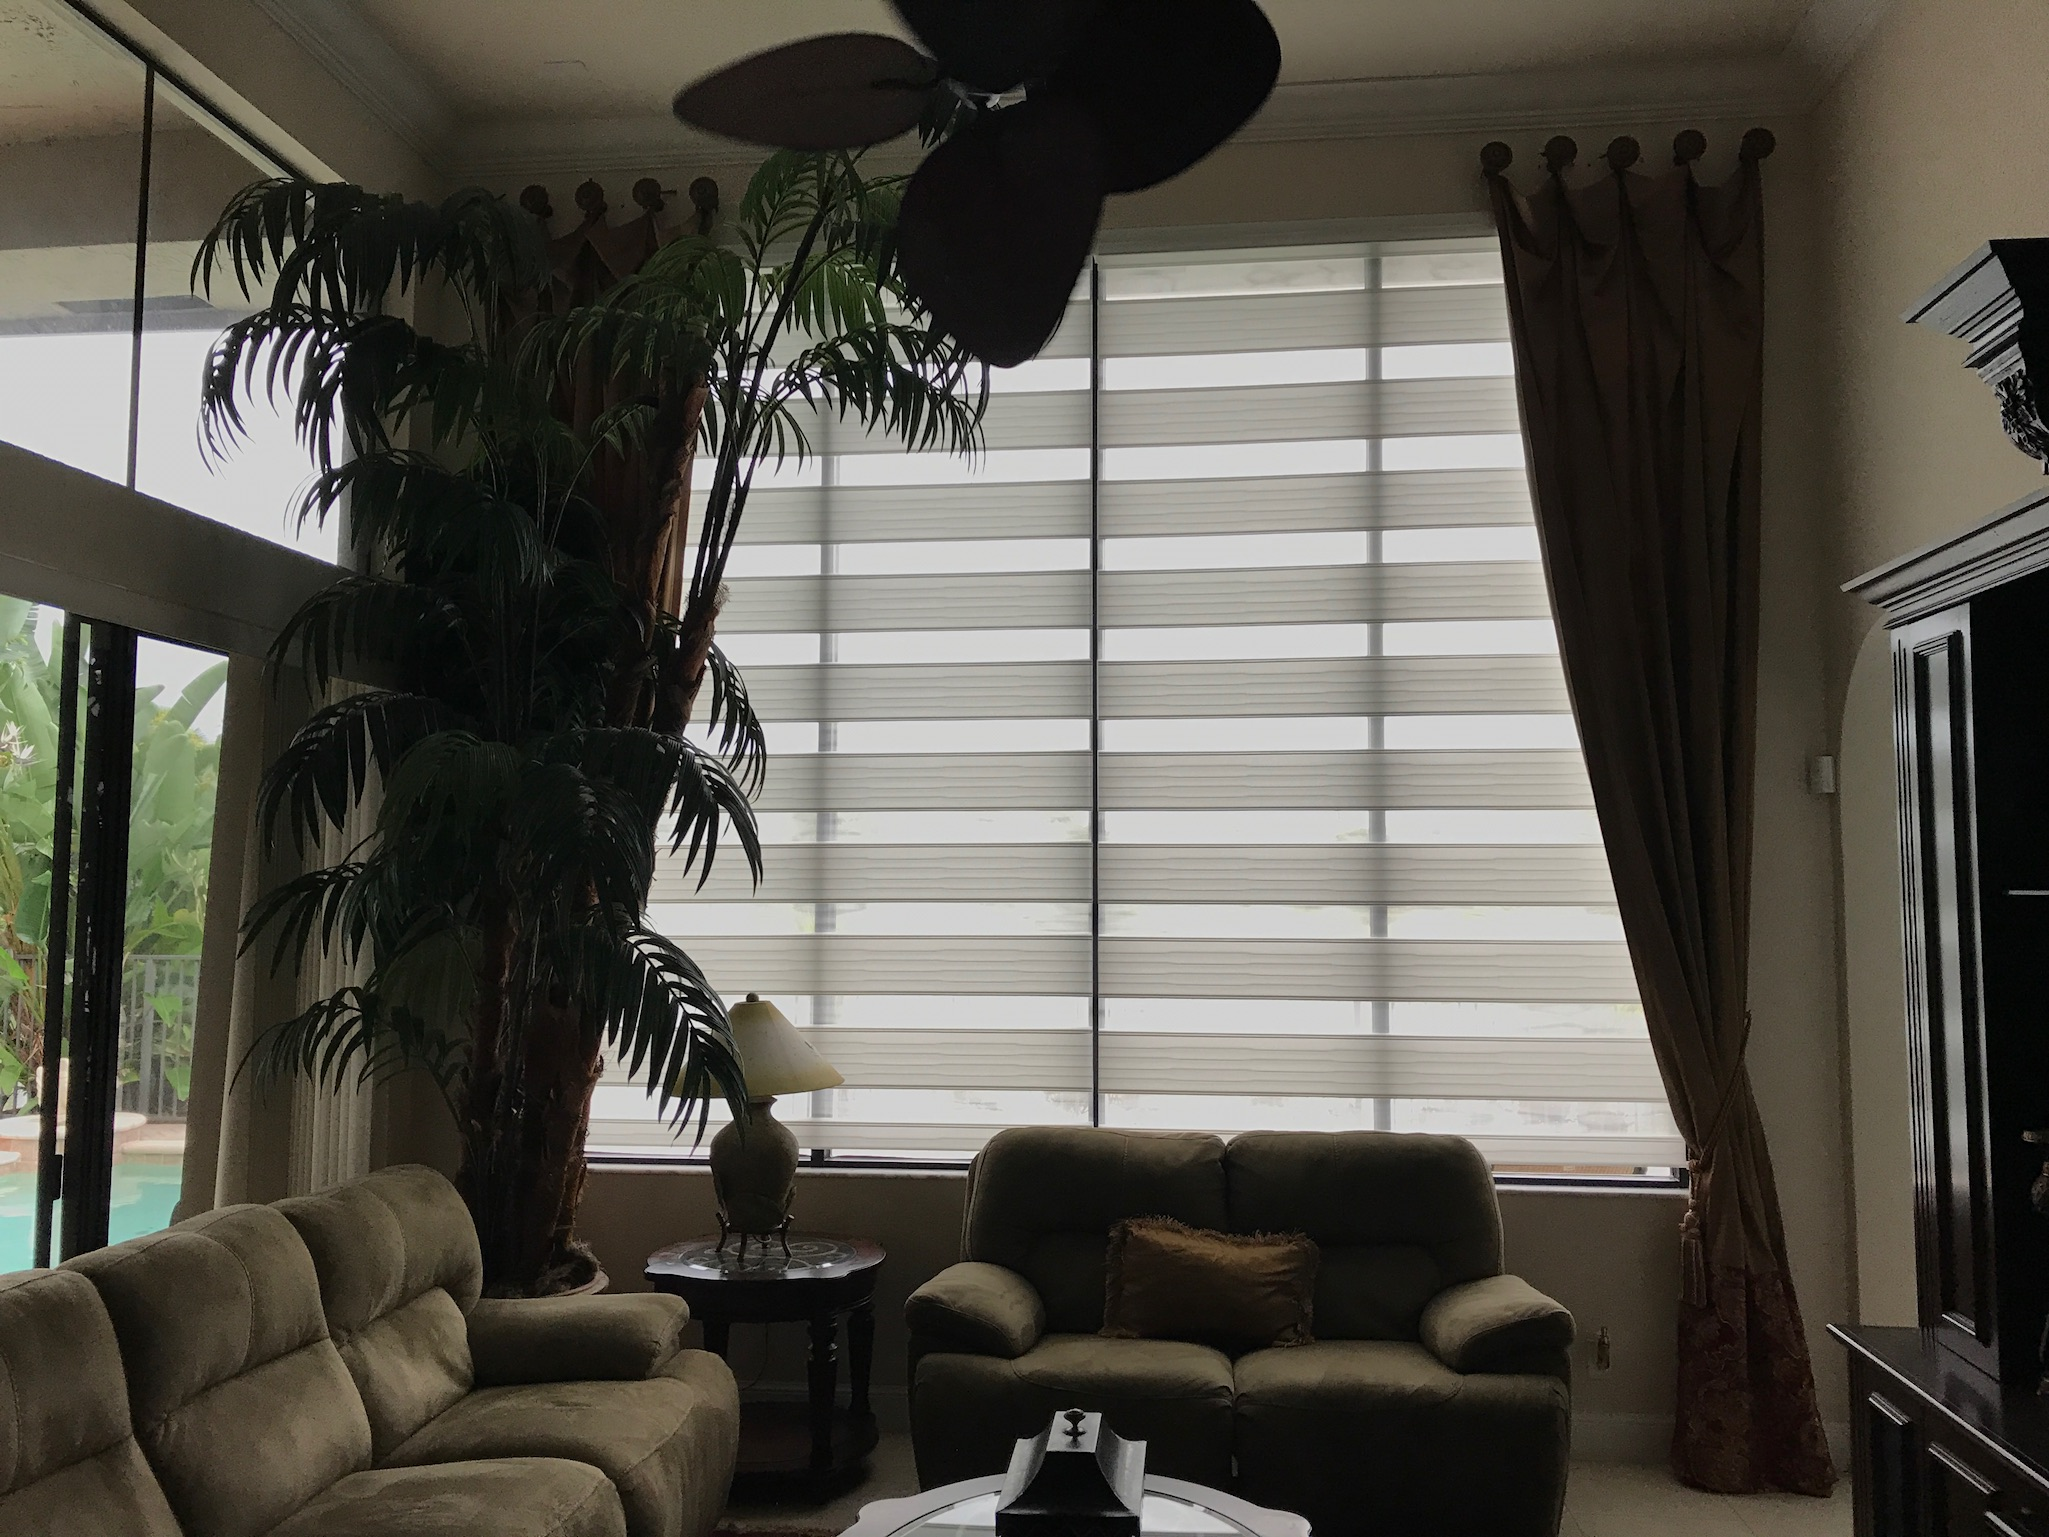 shoppers drapes and blinds instagram the pictures below are recent examples of work completed in addison estates broken sound polo club and oaks at boca raton blinds drapes raton window treatments shoppers